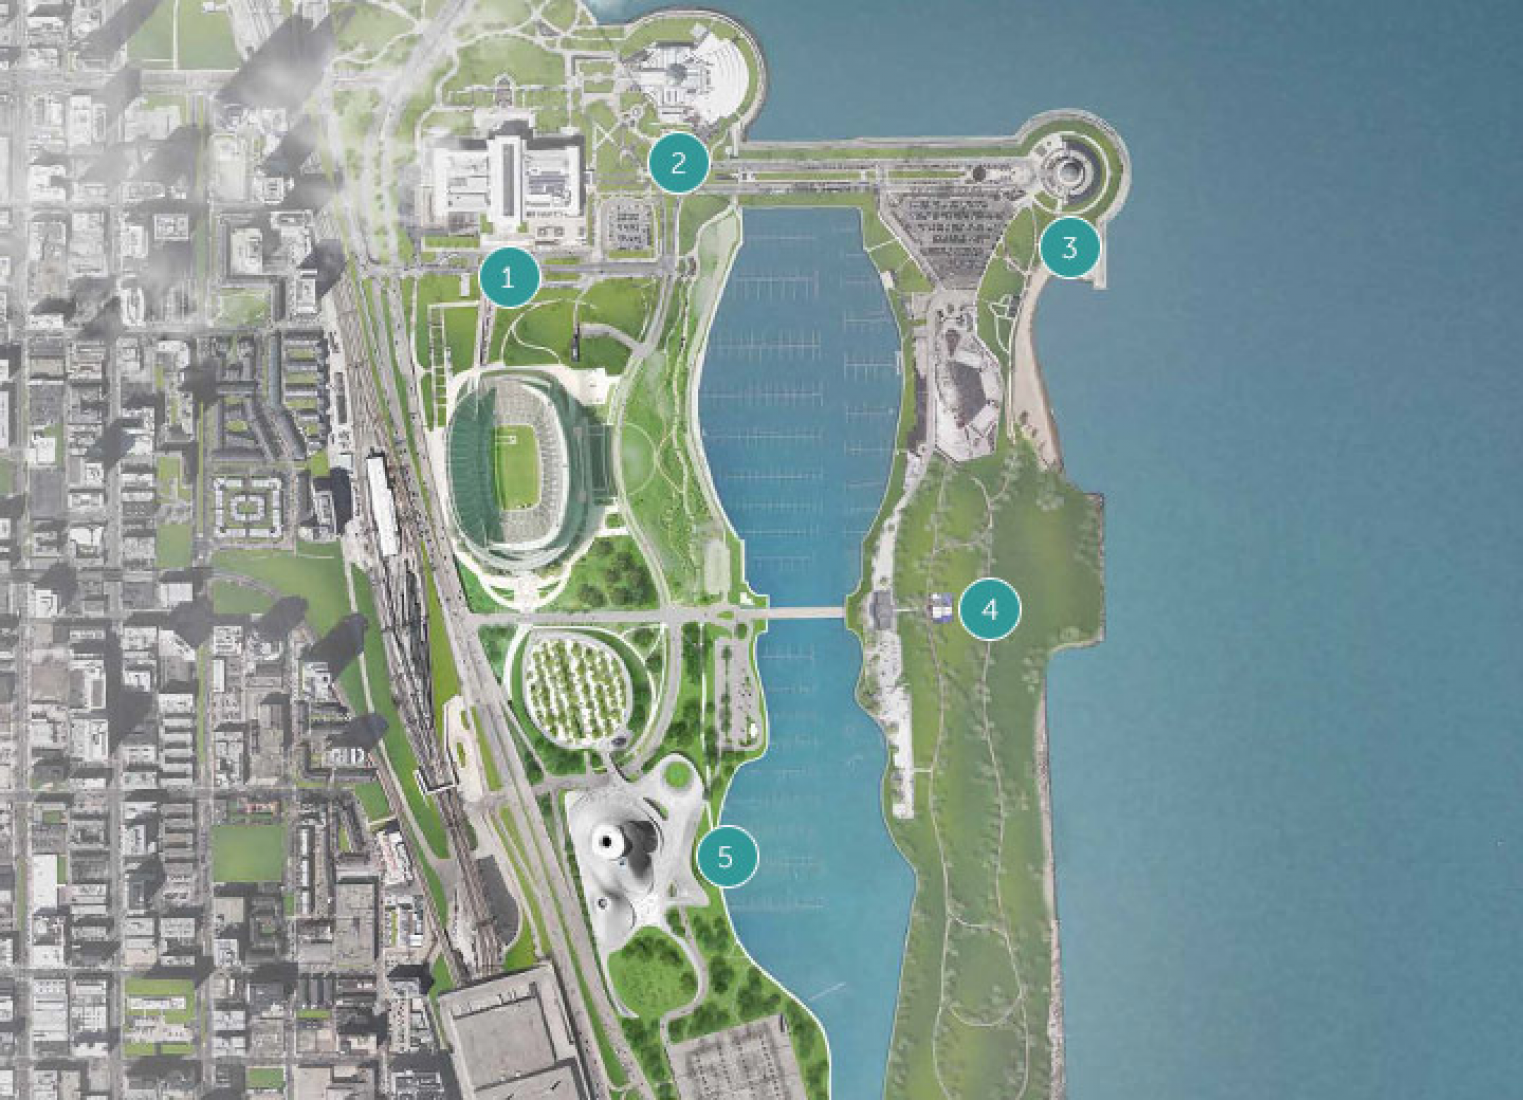 Site plan. (1) Field Museum. (2) Shedd Aquarium. (3) Adler Planetarium. (4) Northerly Island. (5) Lucas Museum of Narrative Art. Image © MAD Architects.